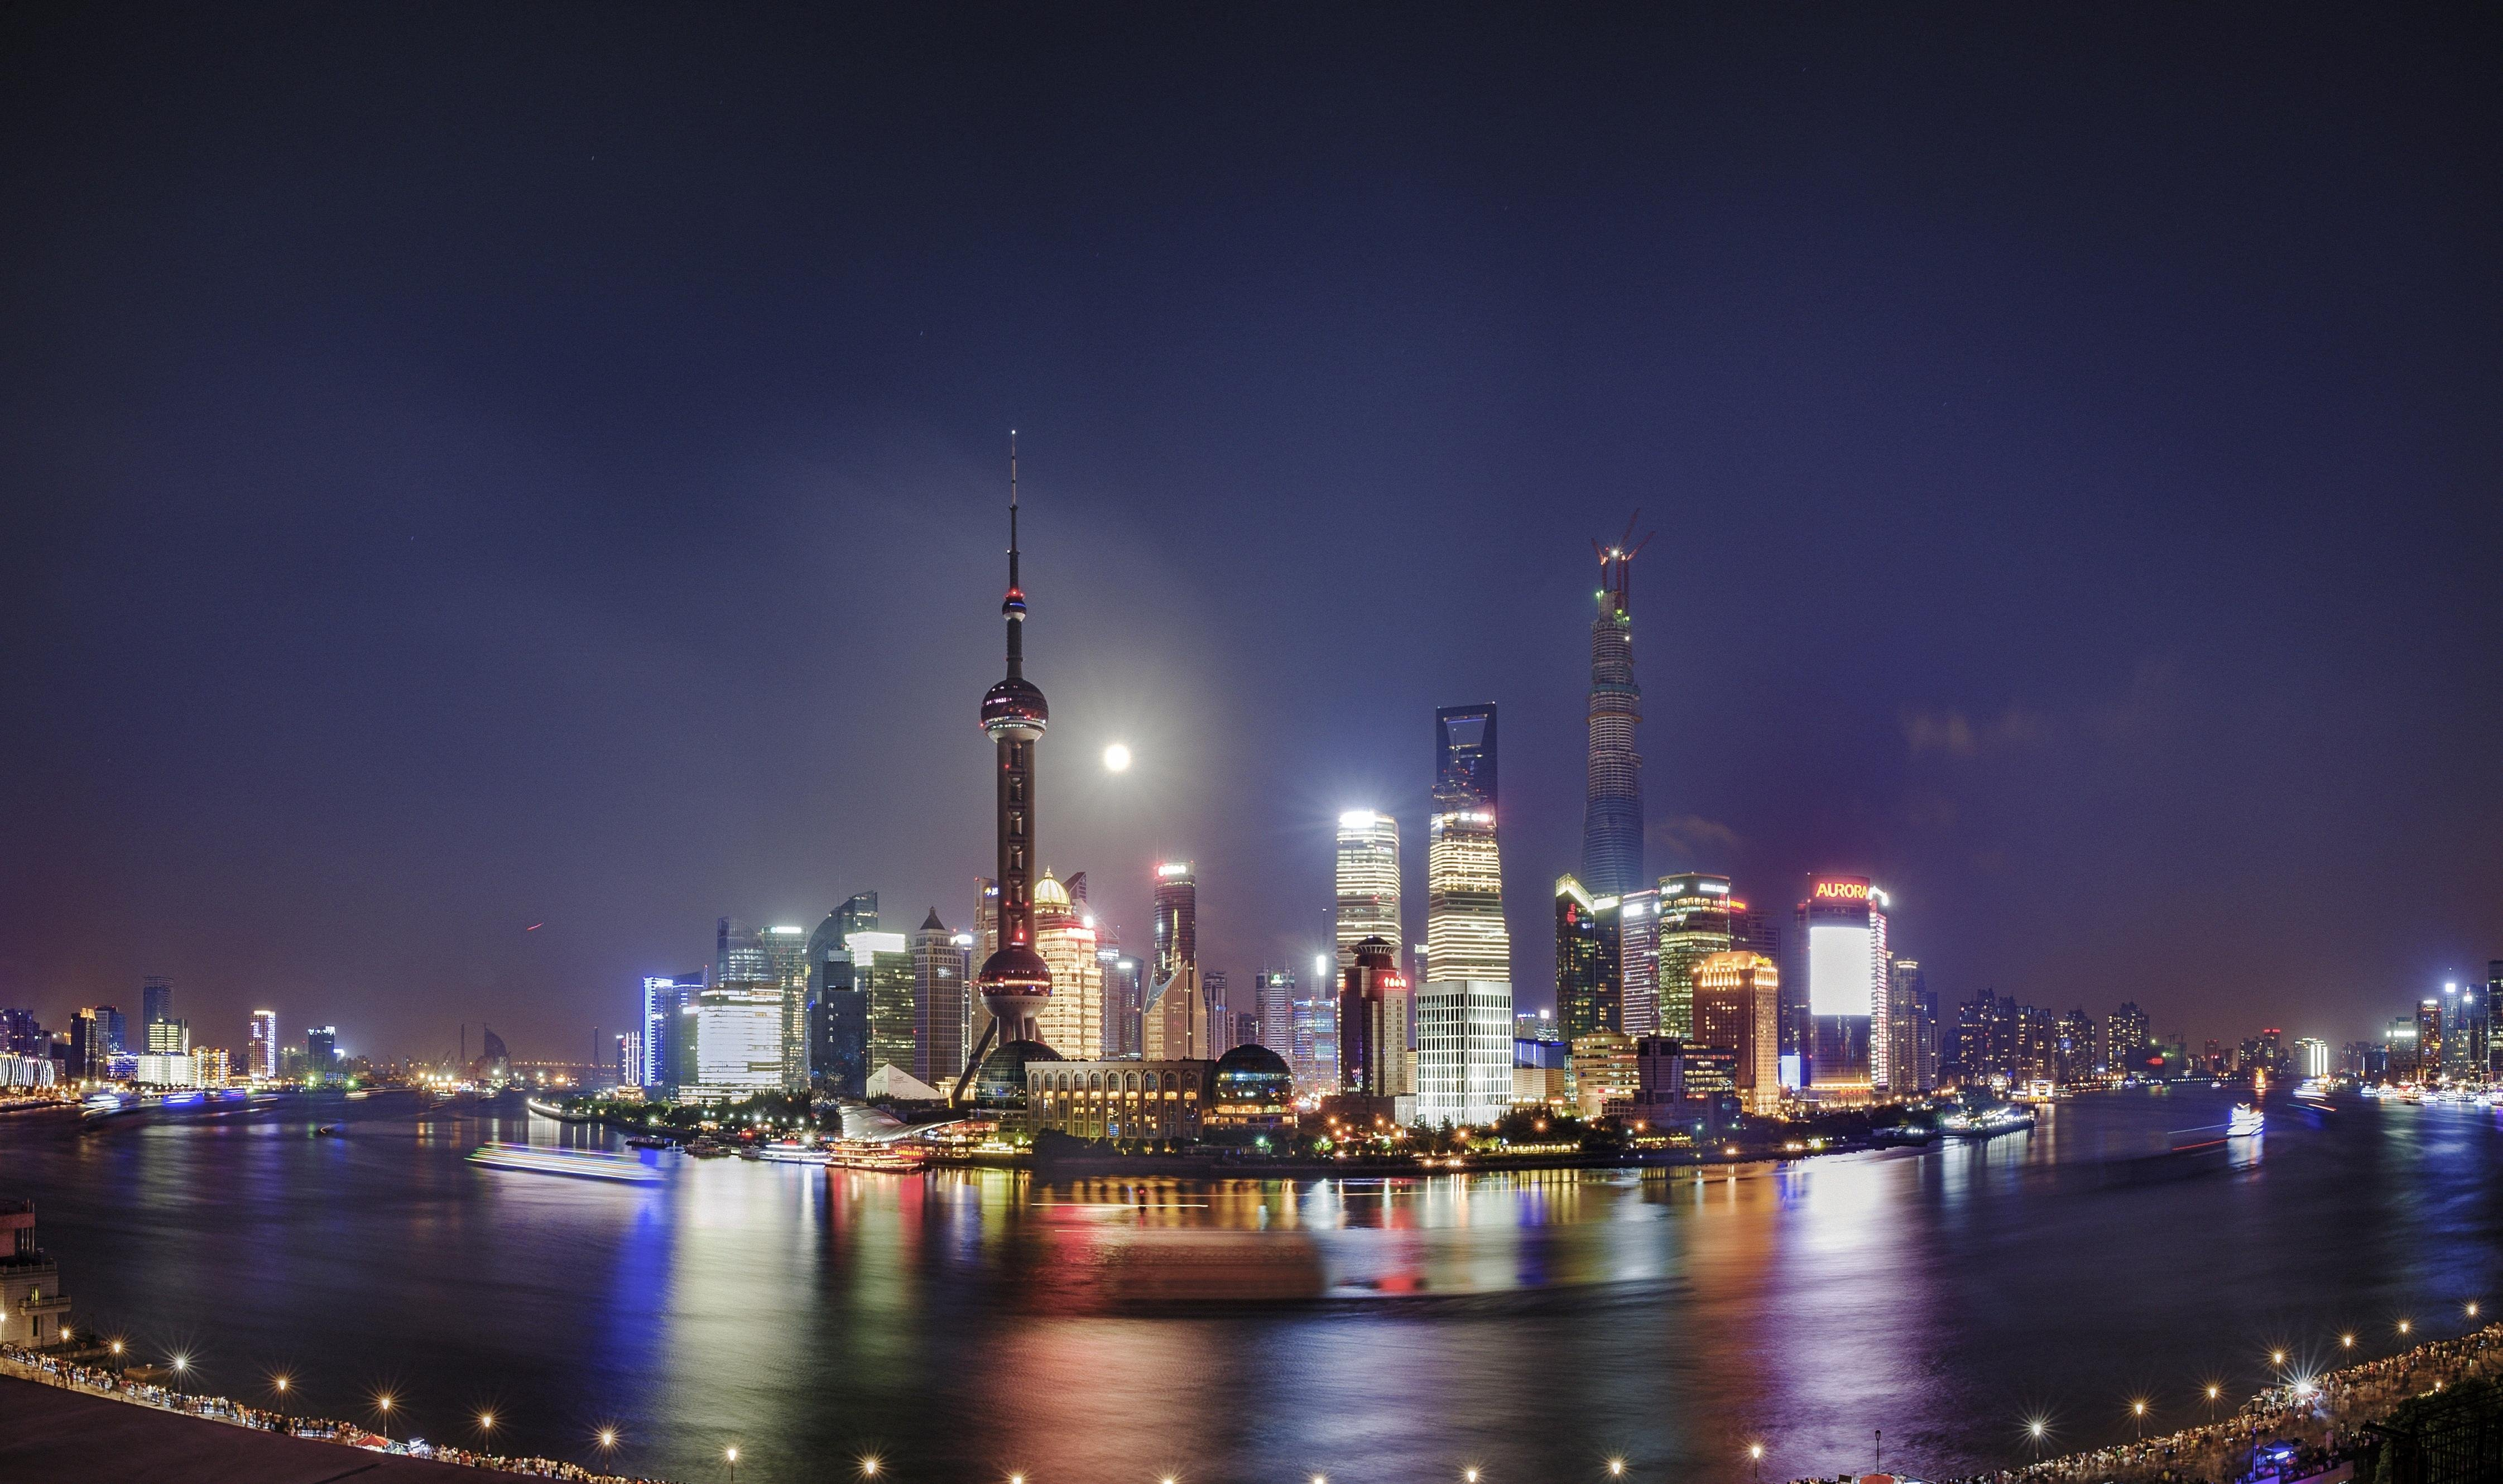 Shanghai wallpapers photos and desktop backgrounds up to 8k 7680x4320 resolution - Shanghai skyline wallpaper ...